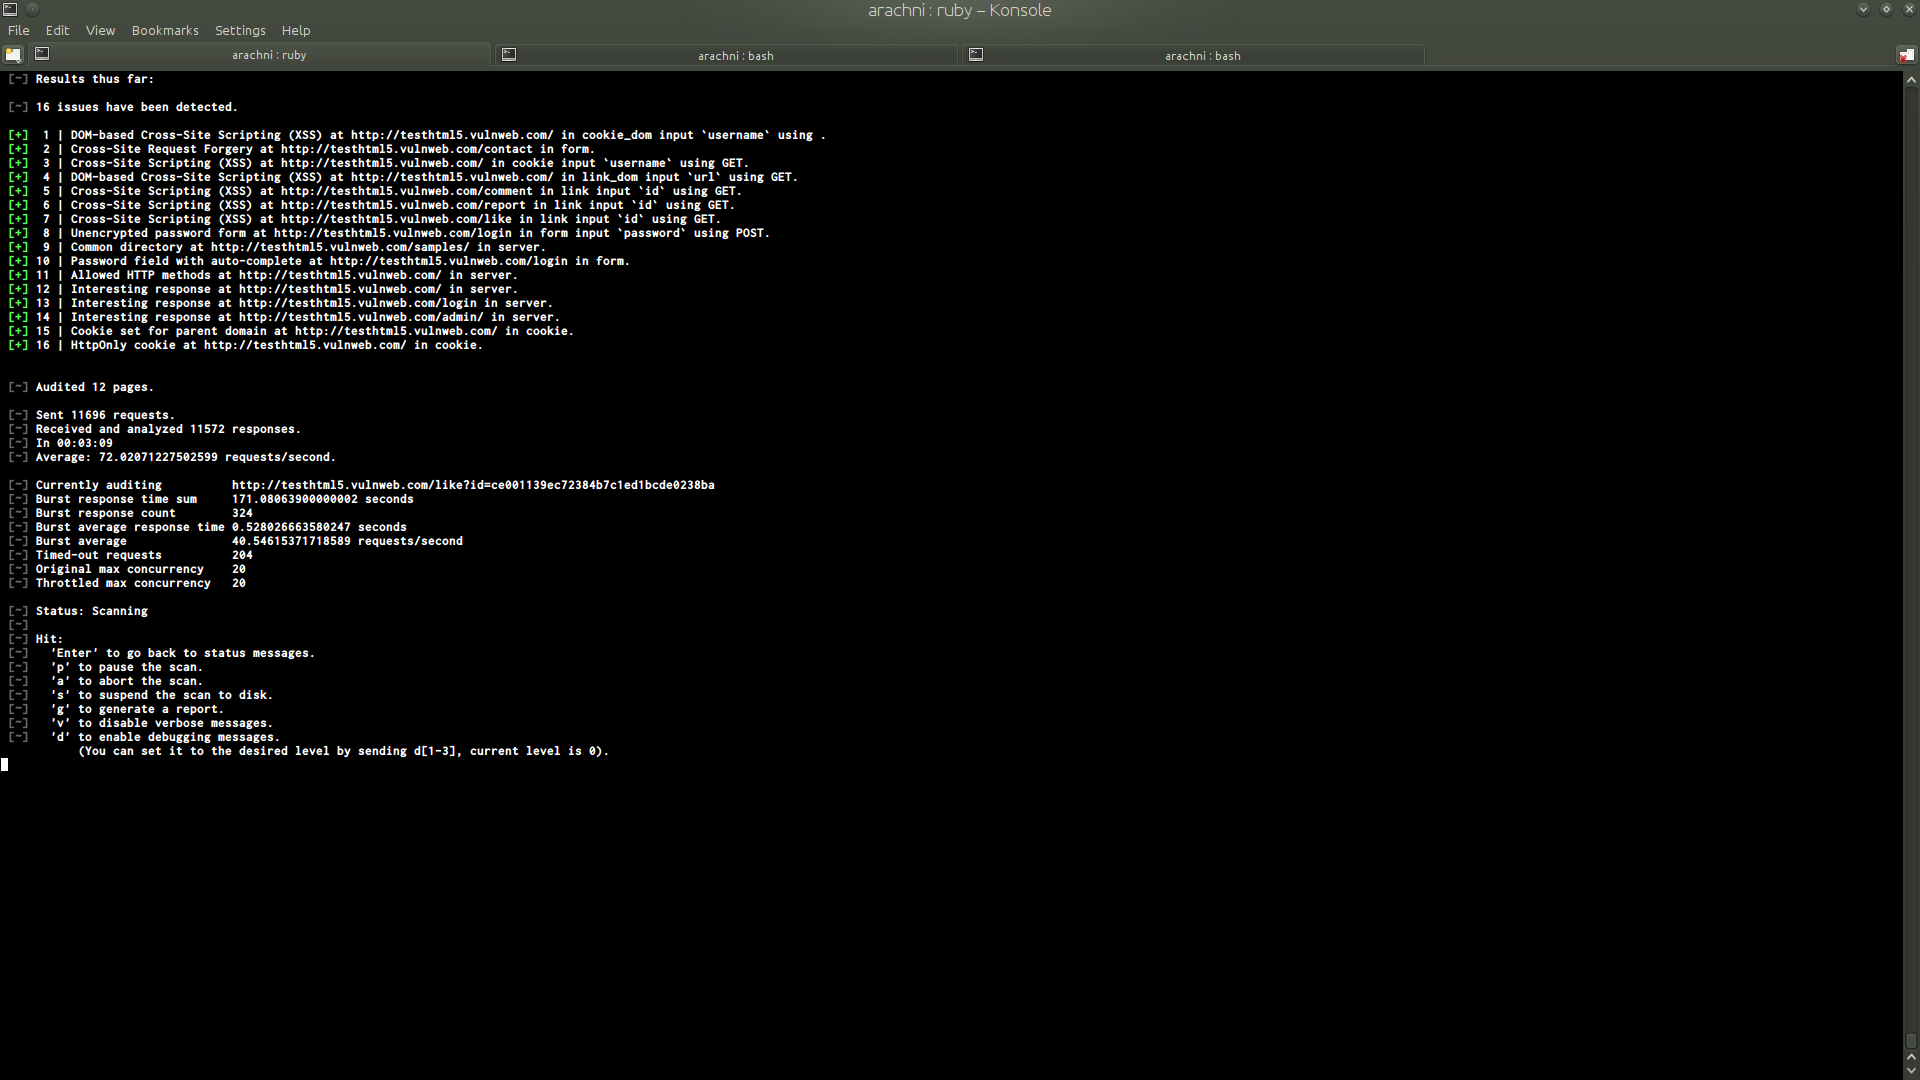 Command Line Interface Arachni Web Application